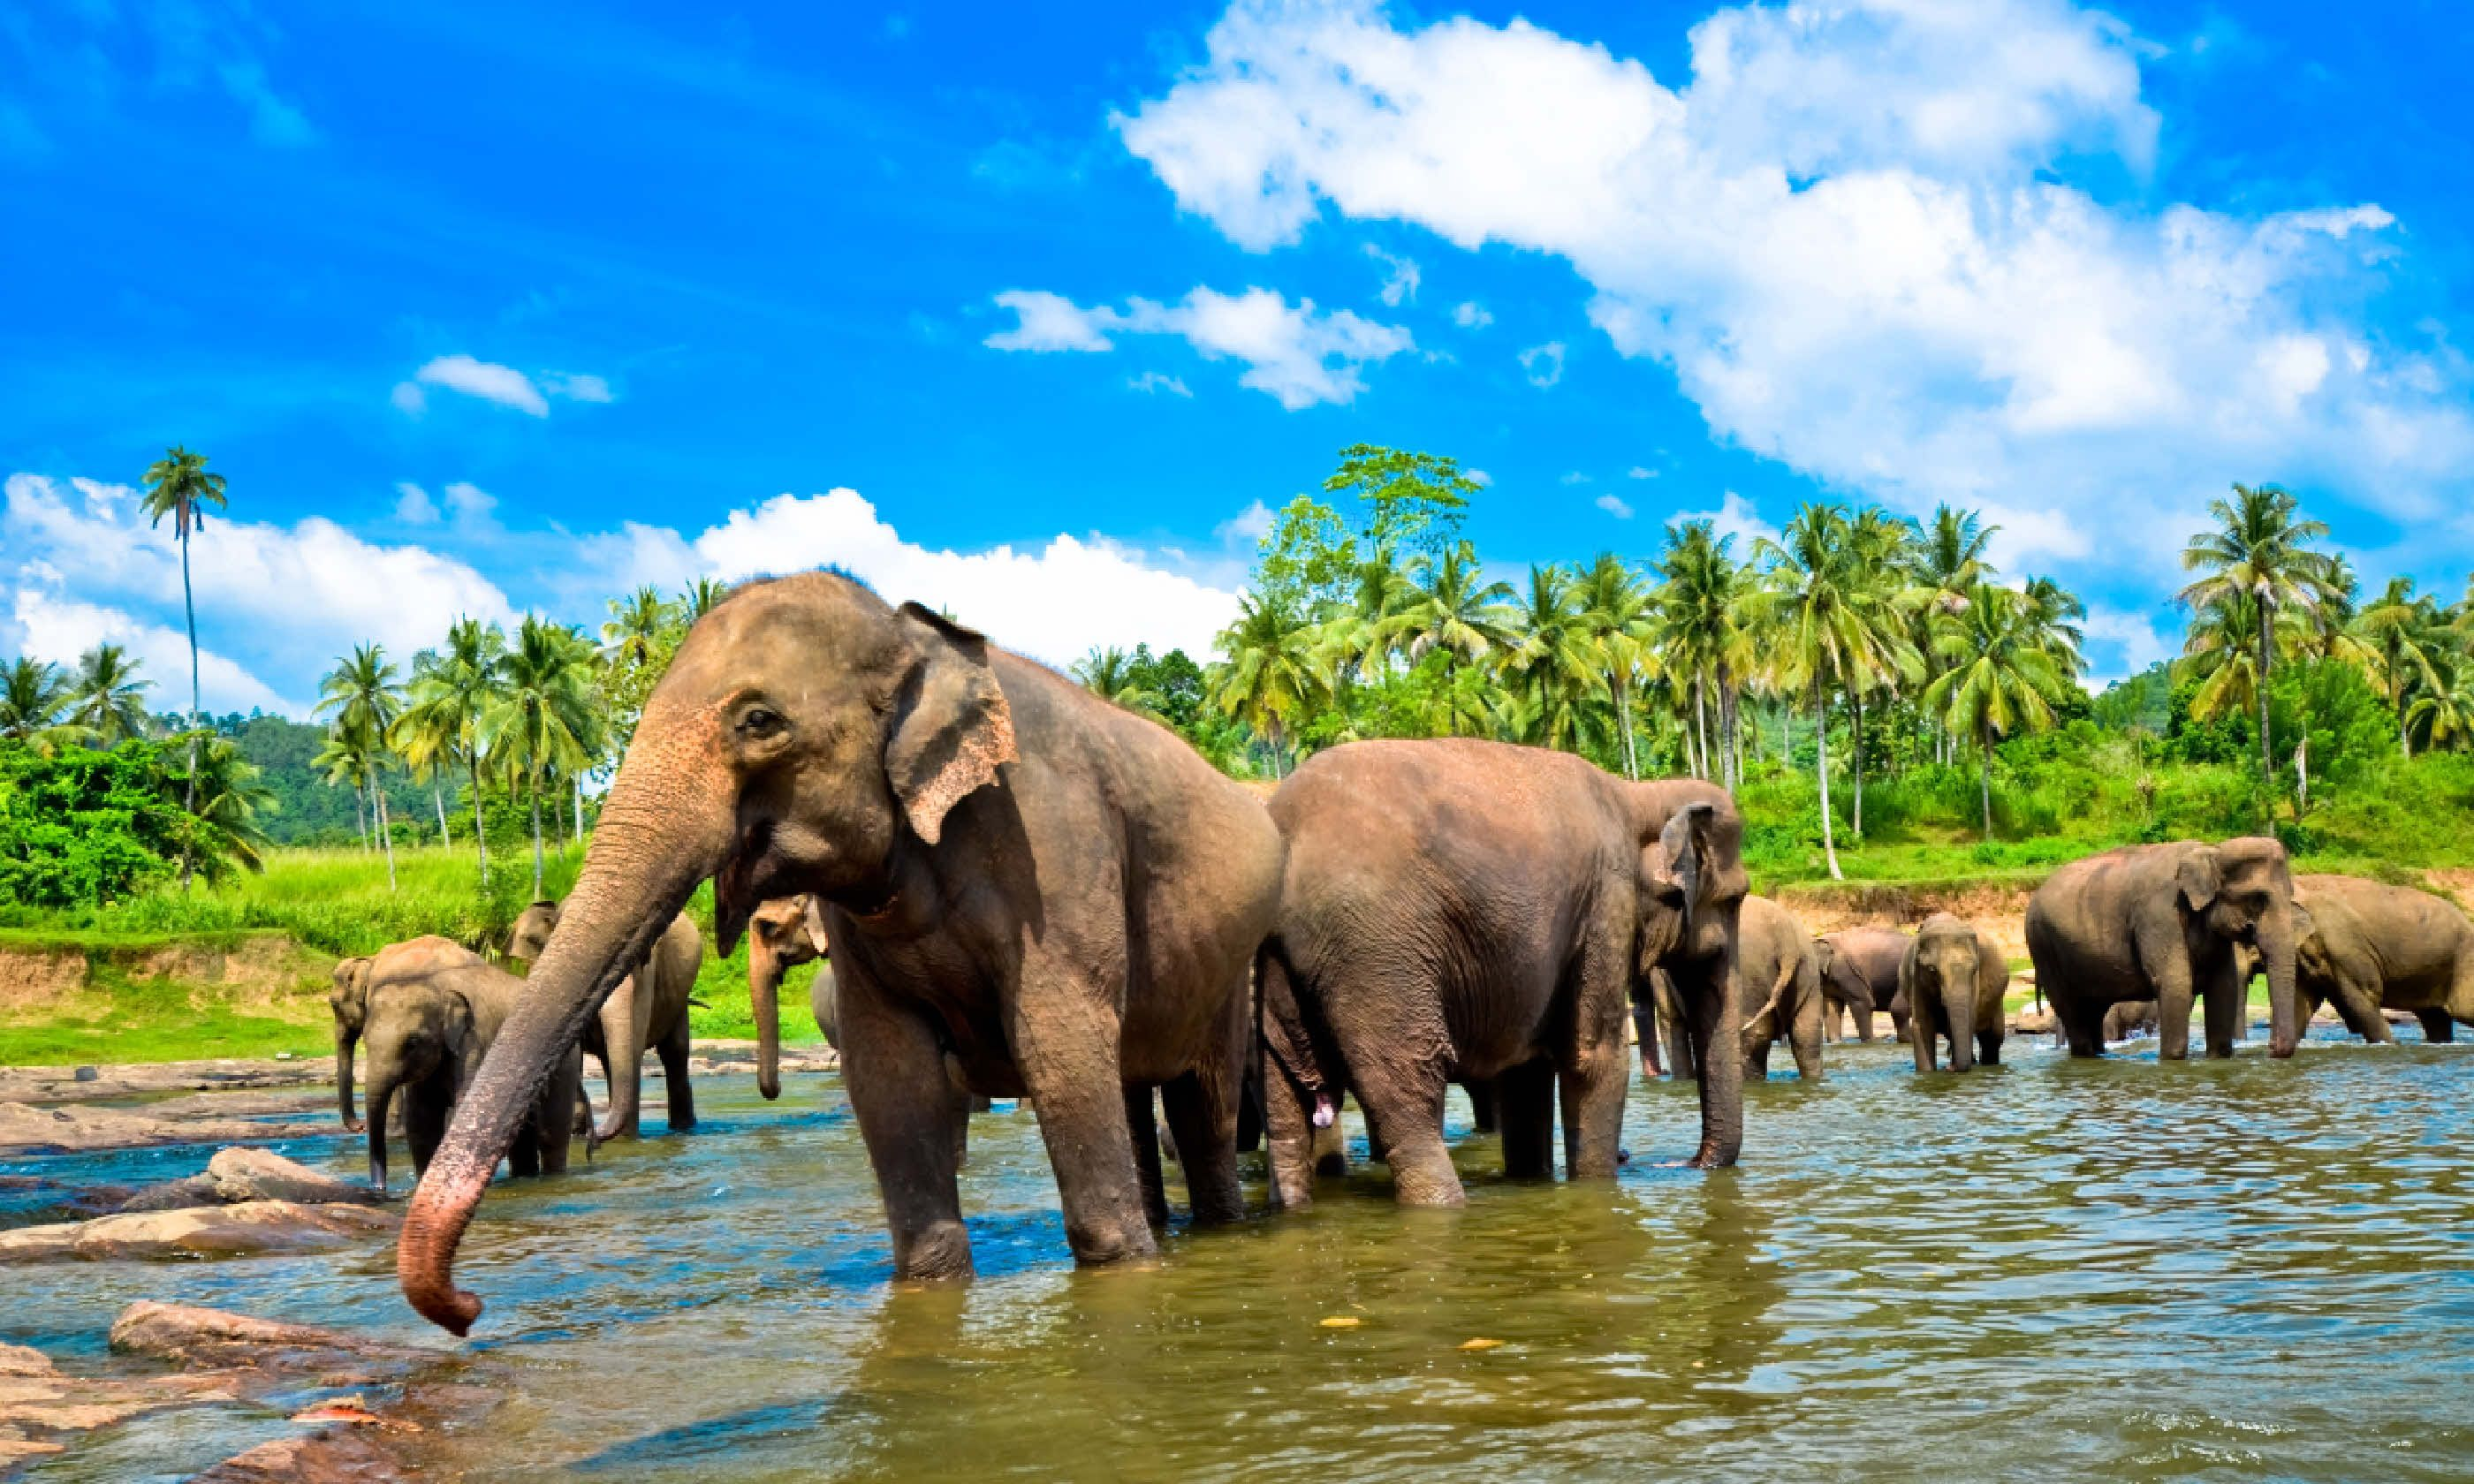 Elephant group in a river (Shutterstock)